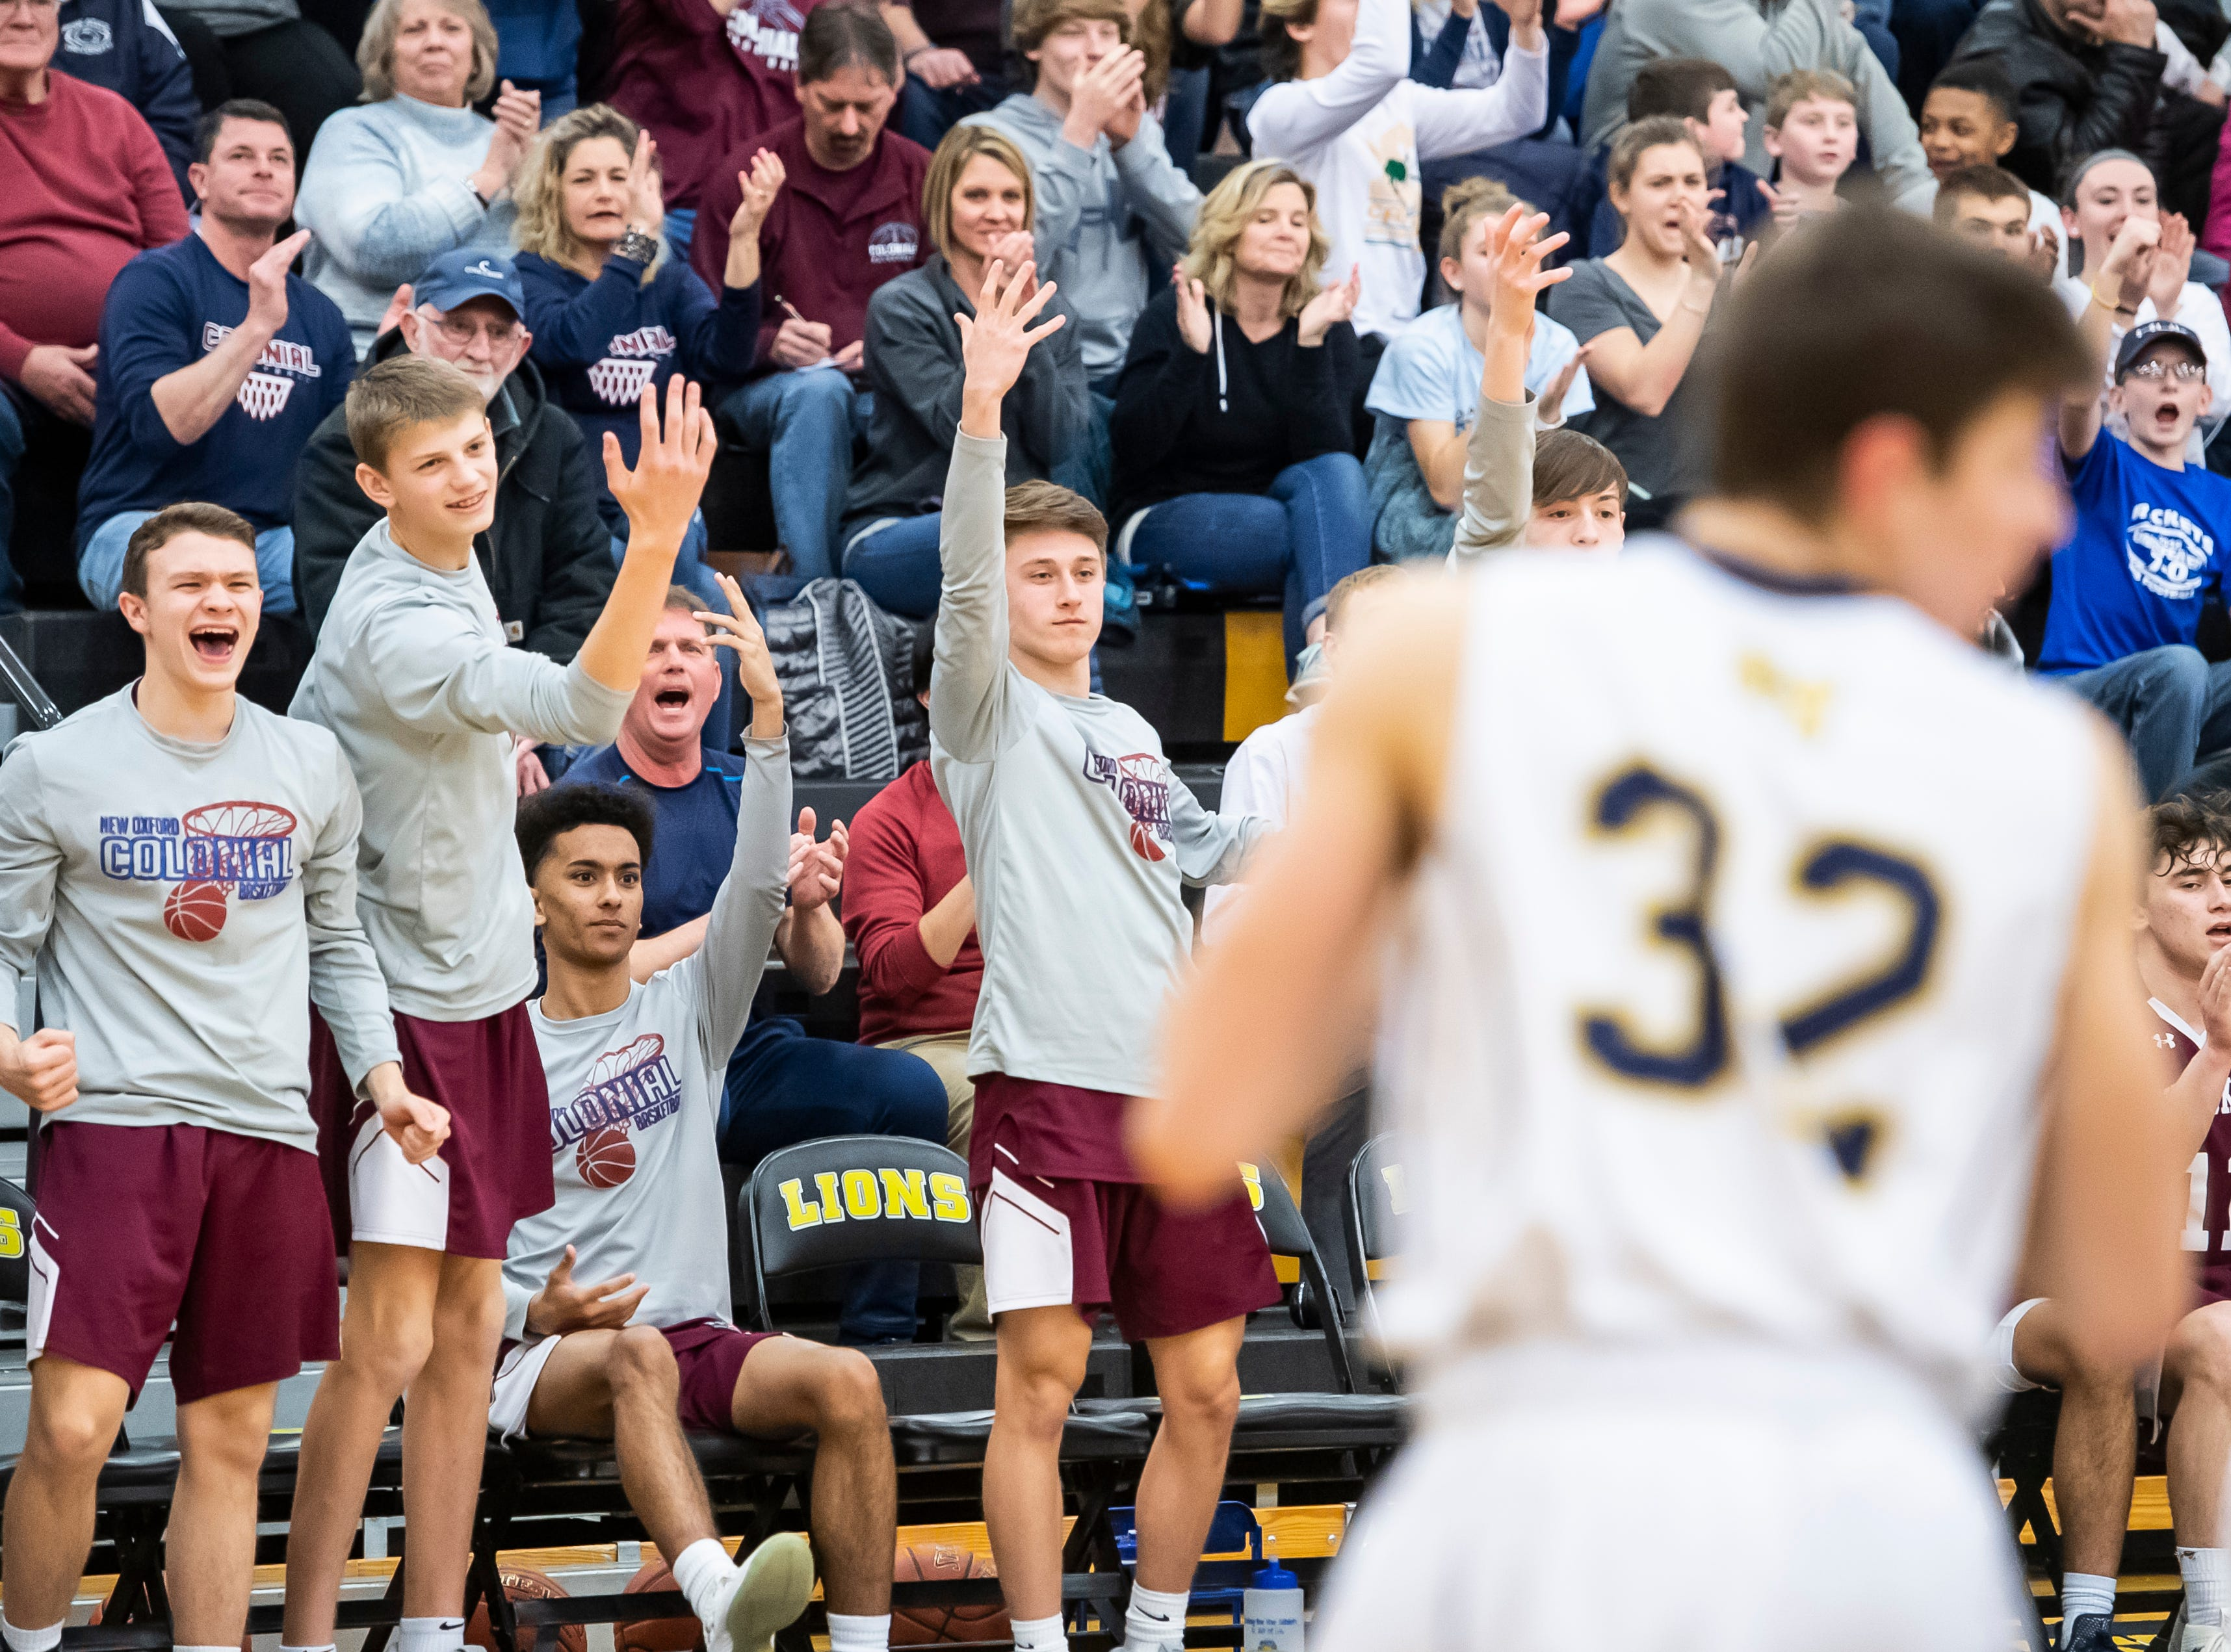 The New Oxford bench celebrates a bucket late in the fourth quarter of play against Eastern York in a YAIAA quarterfinal game at Red Lion High School Saturday, February 9, 2019. The Colonials won 54-44.